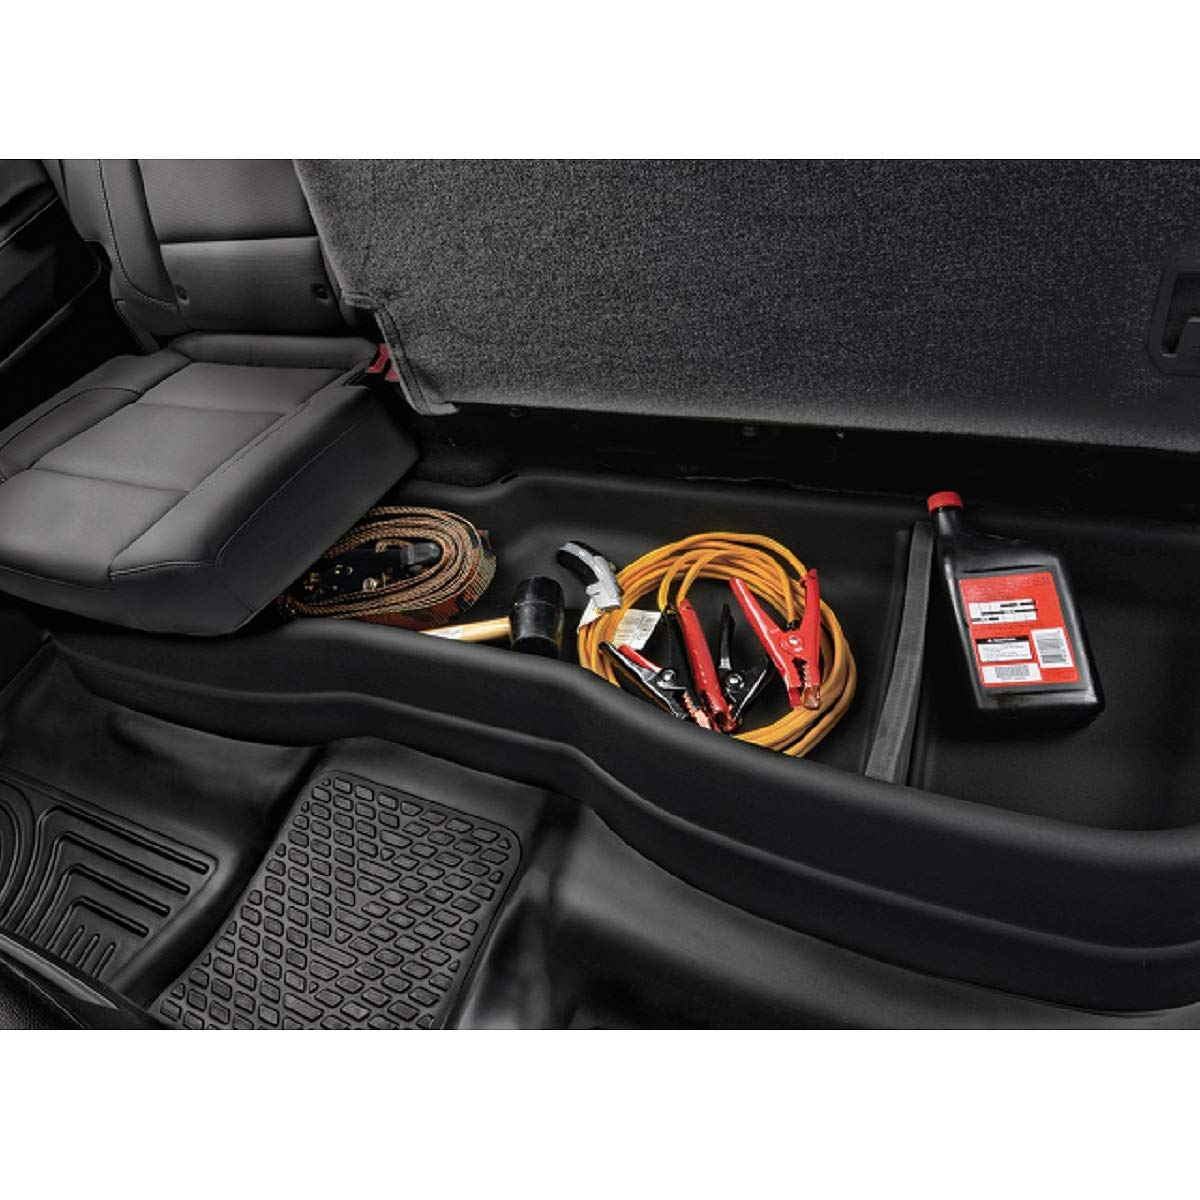 Rear Under Seat Cargo Storage Case Organizer Box for Chevy Silverado GMC Sierra Crew Cab 14-19